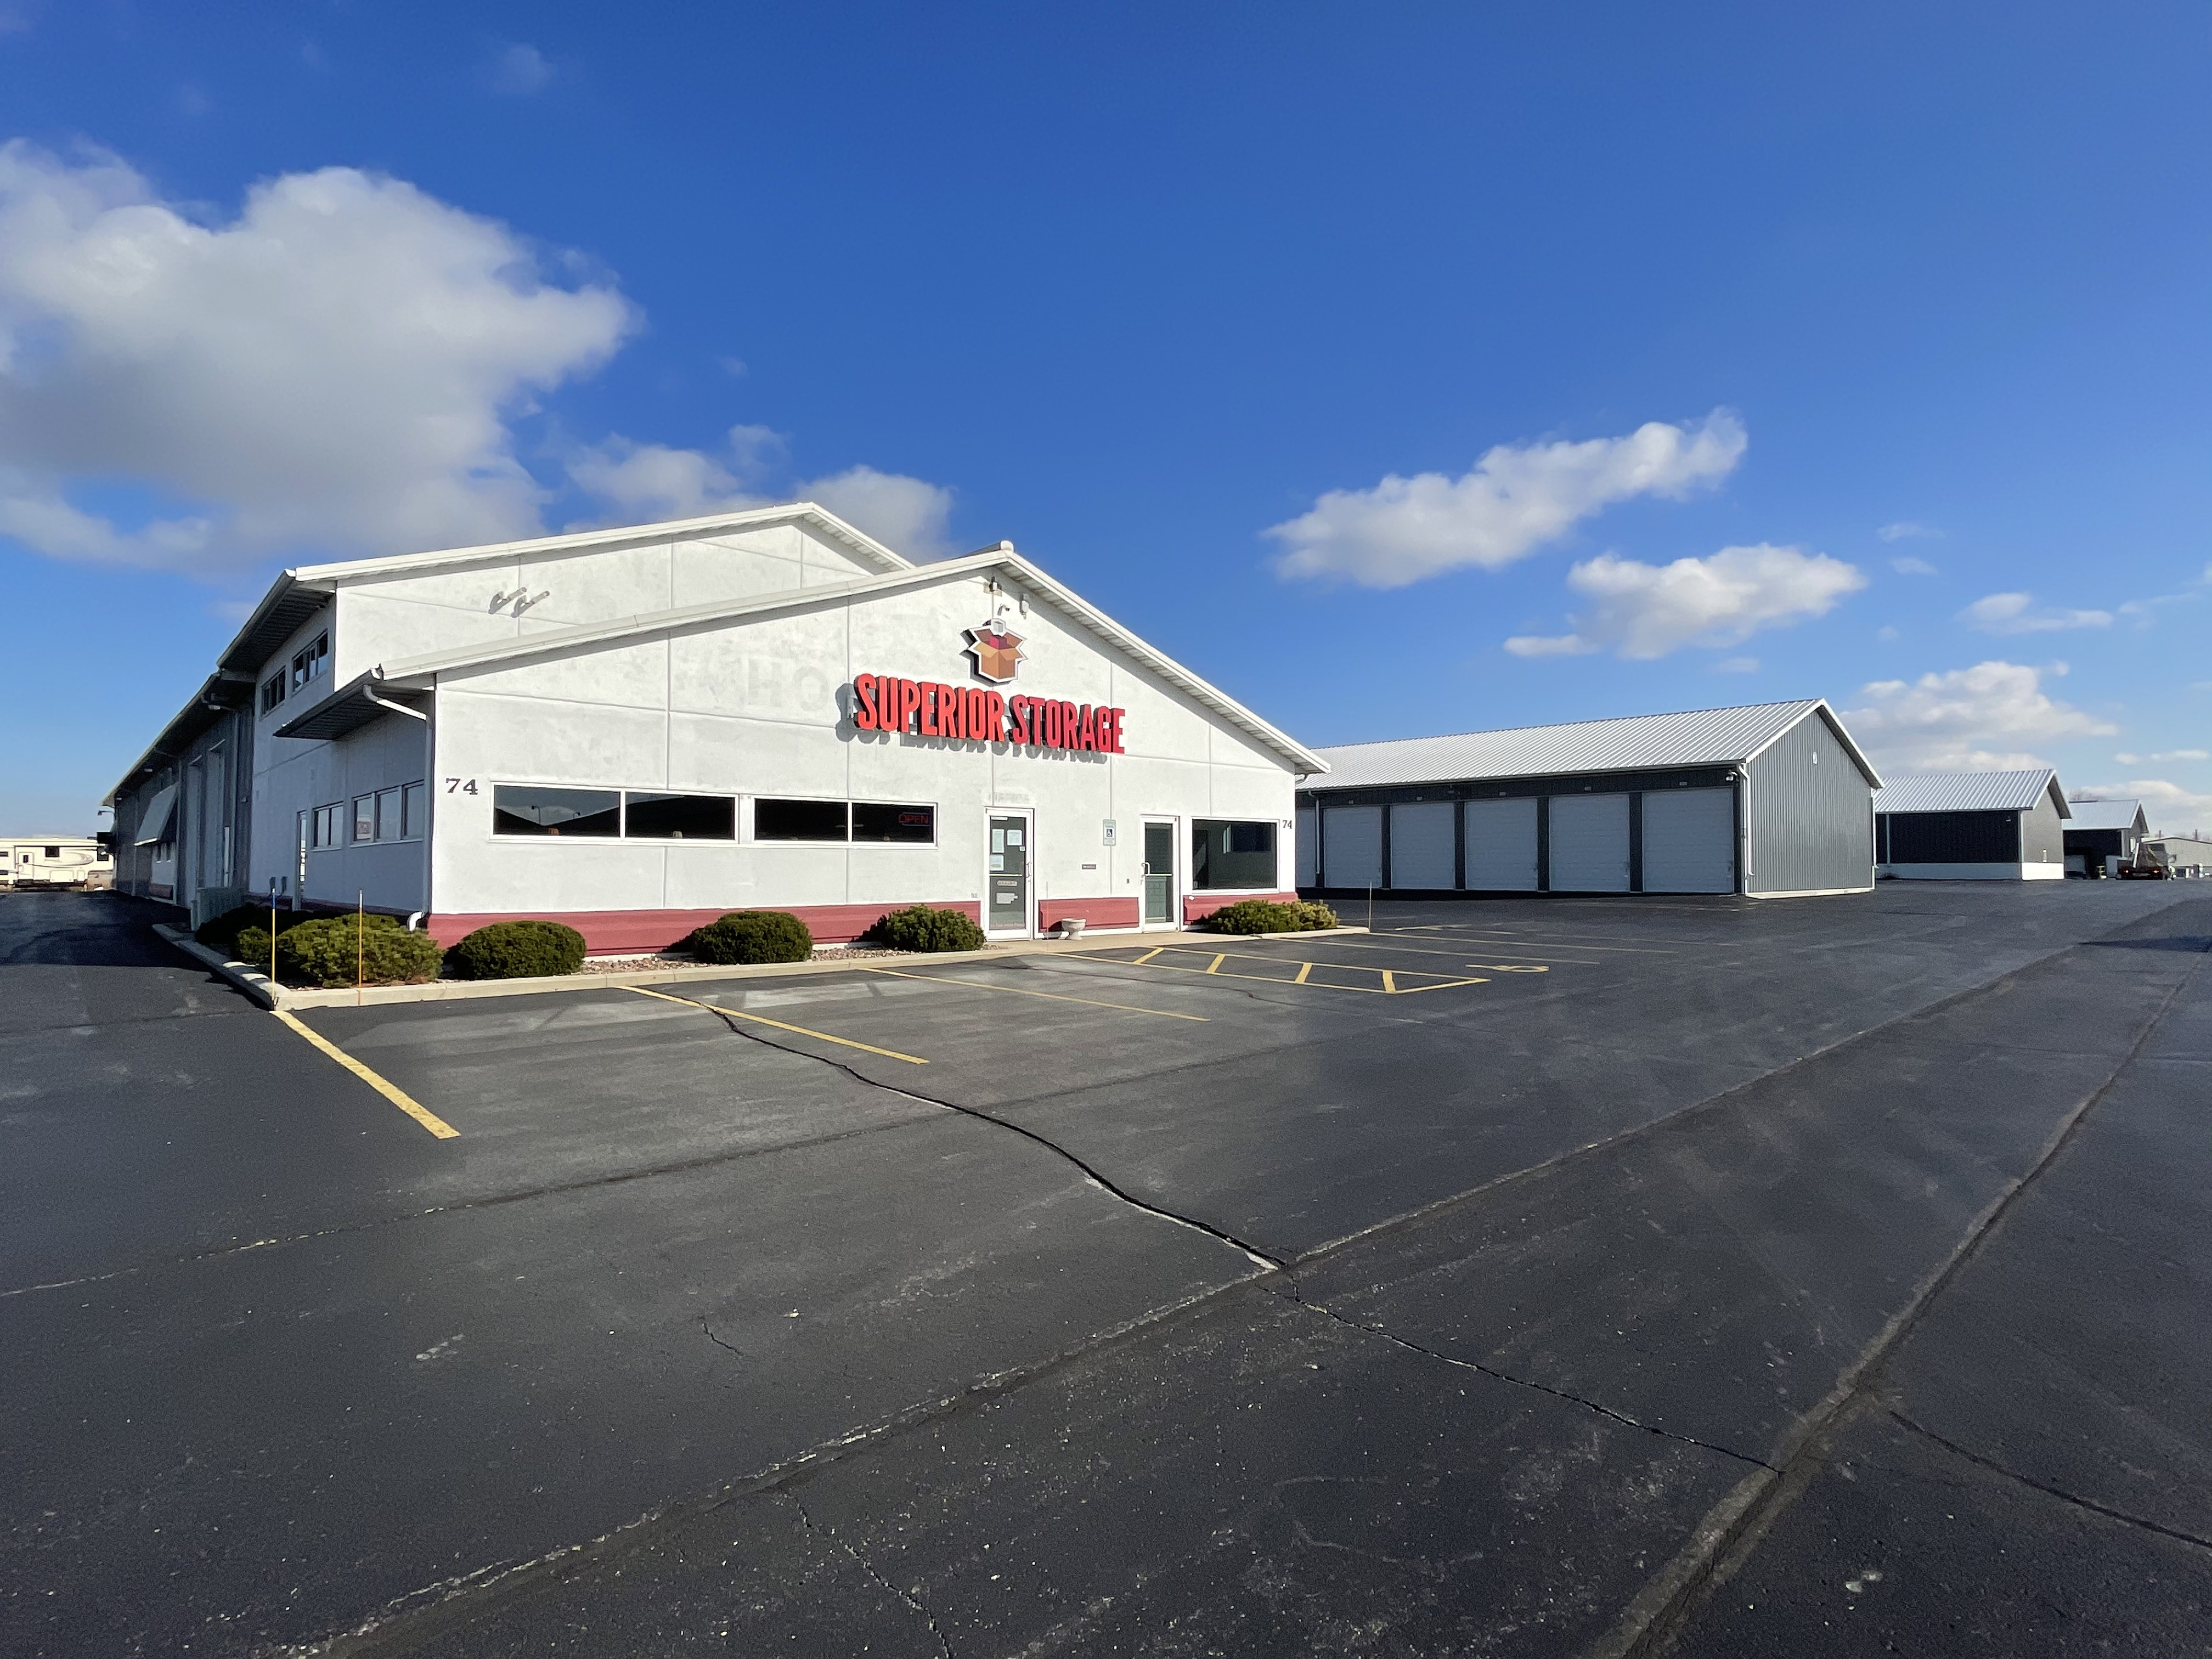 Superior Storage - Fond du Lac (Hoerth Storage)